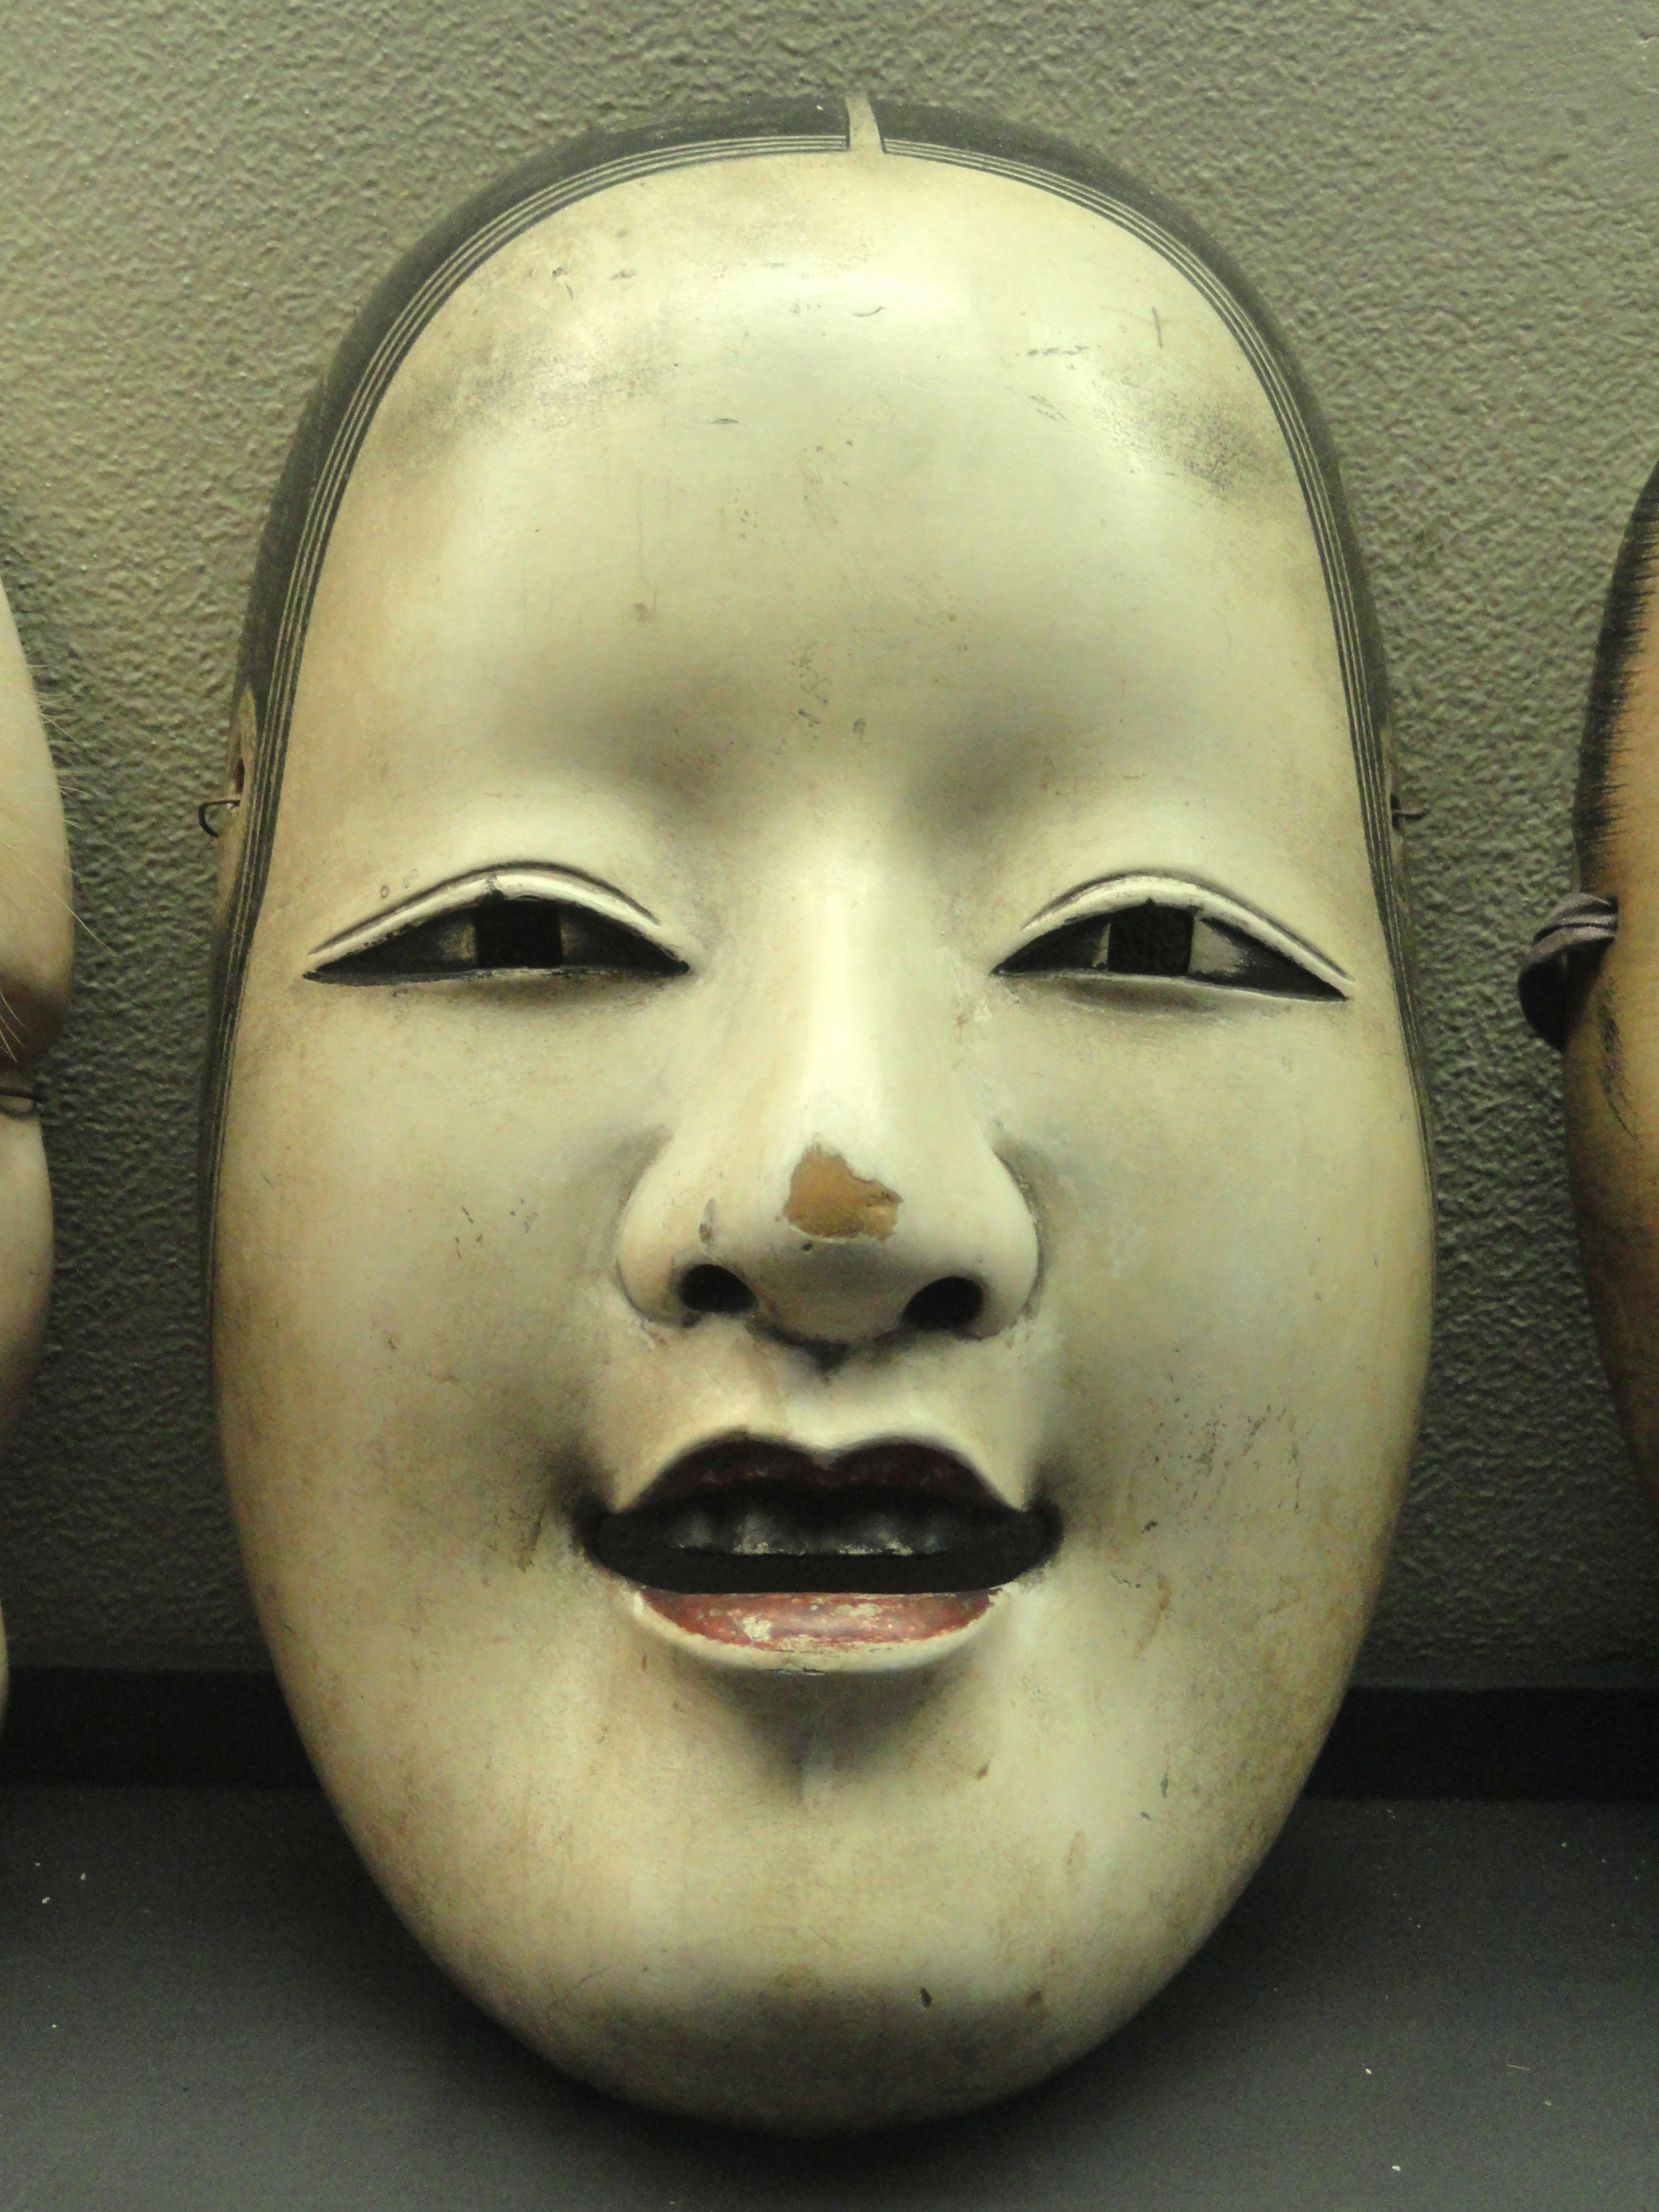 Ko-omote character, Noh mask, early 1700s, seal reading 'Sojun' - George Walter Vincent Smith Art Museum - DSC03533.JPG